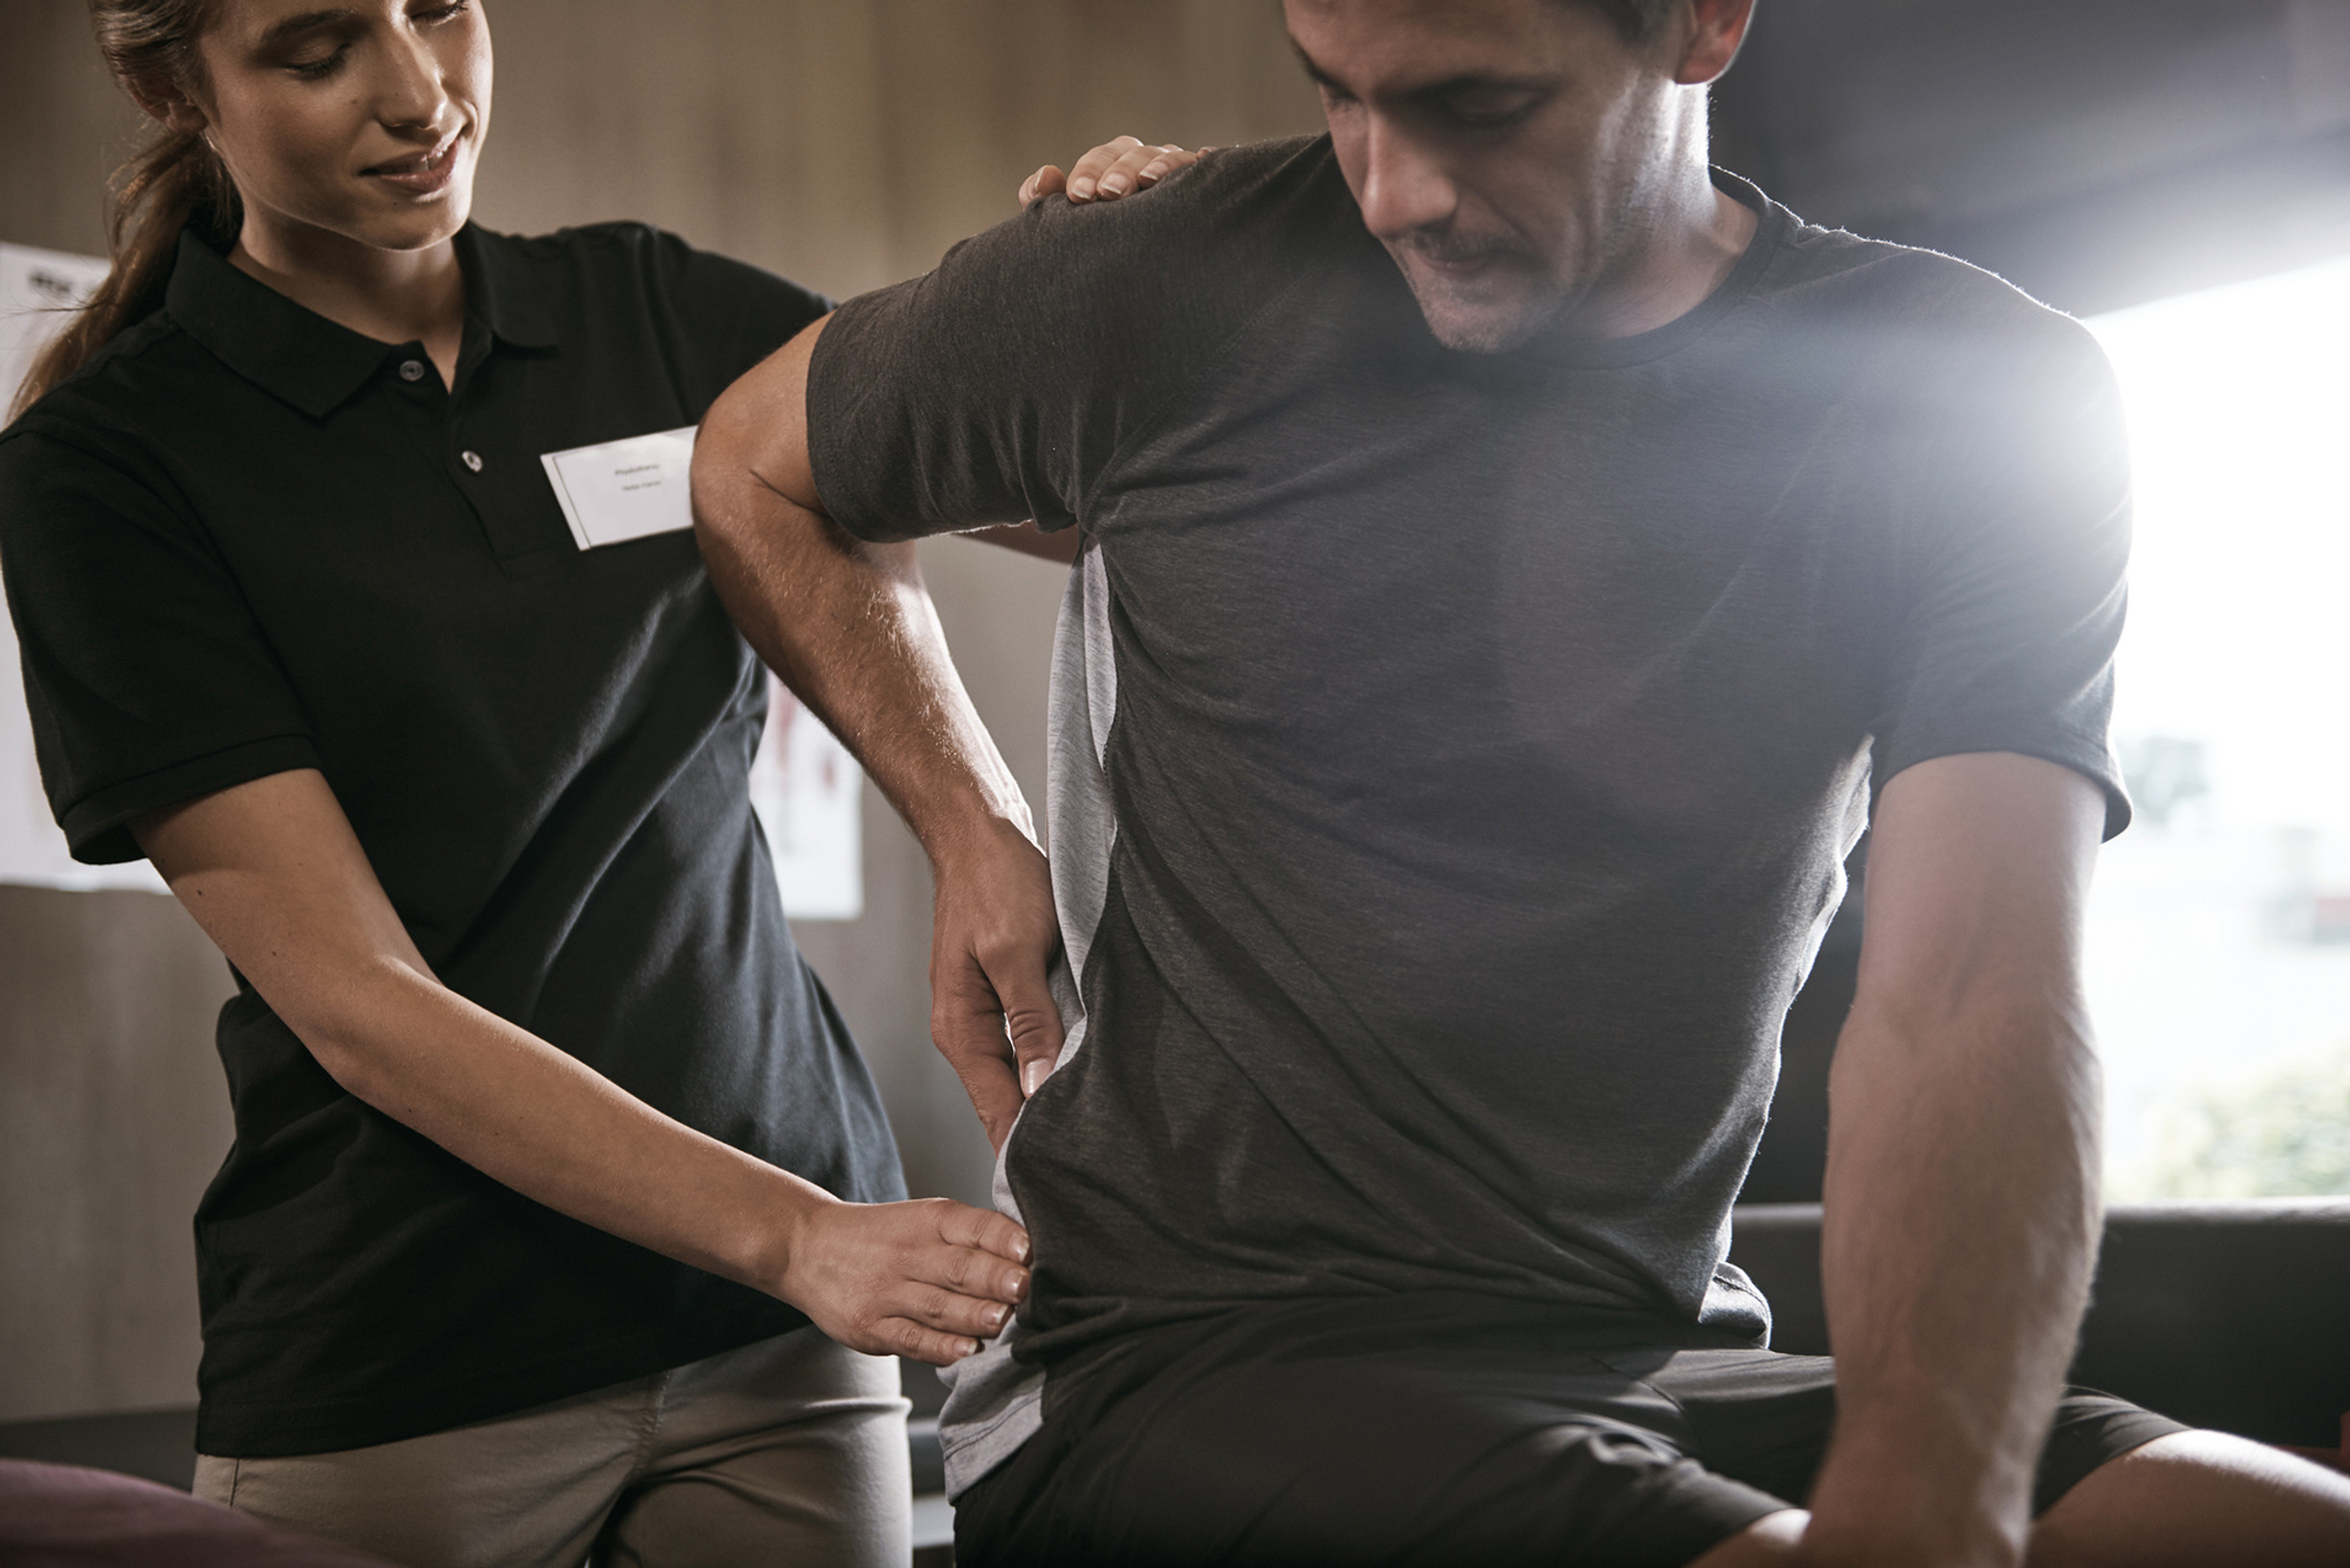 Physiotherapy Initial Assessment